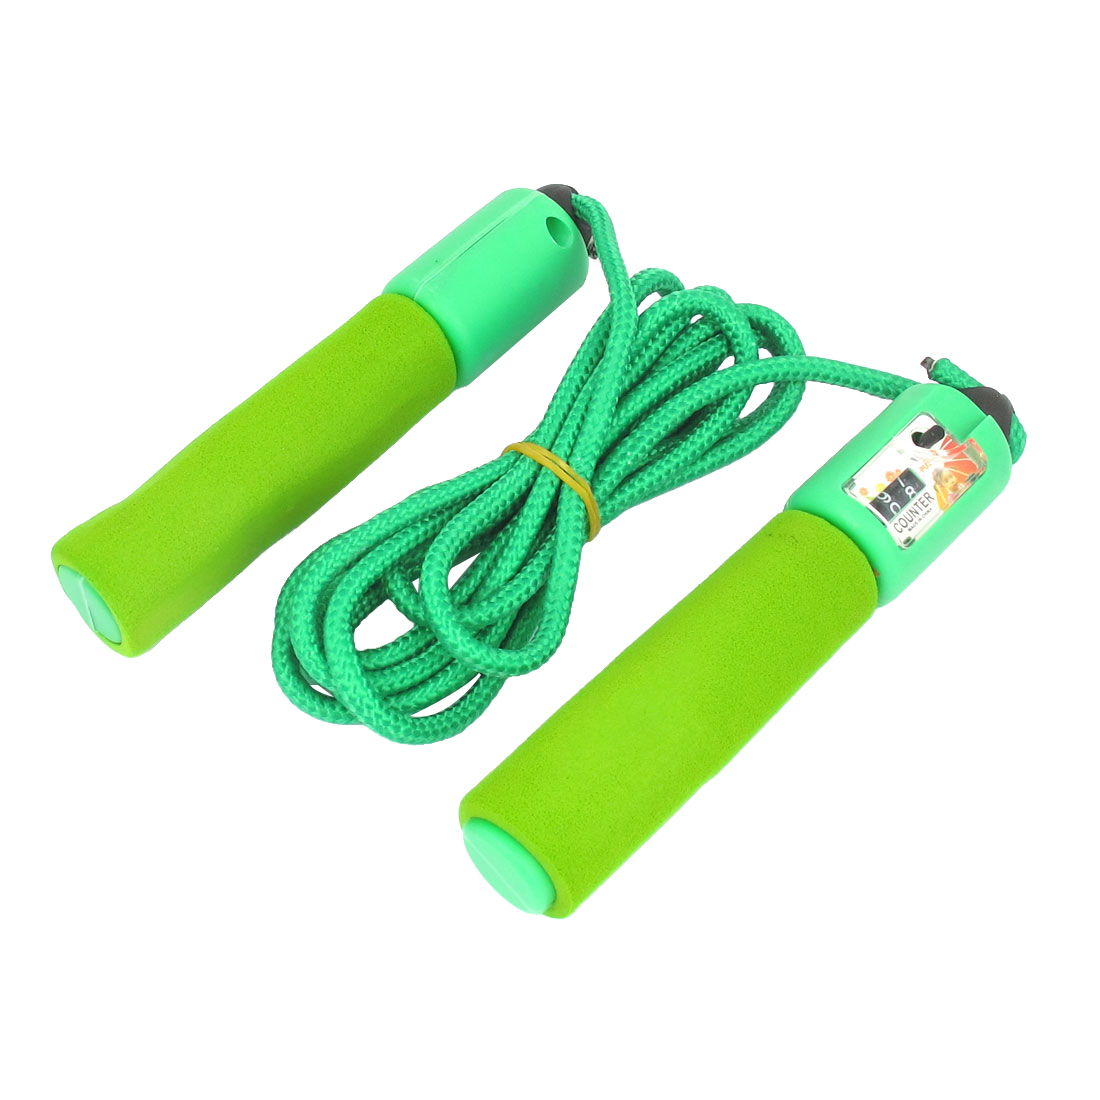 8Ft 2.5m Length Green Nonslip Handle Resettable Counter Adjustable Skipping Jump Jumping Rope